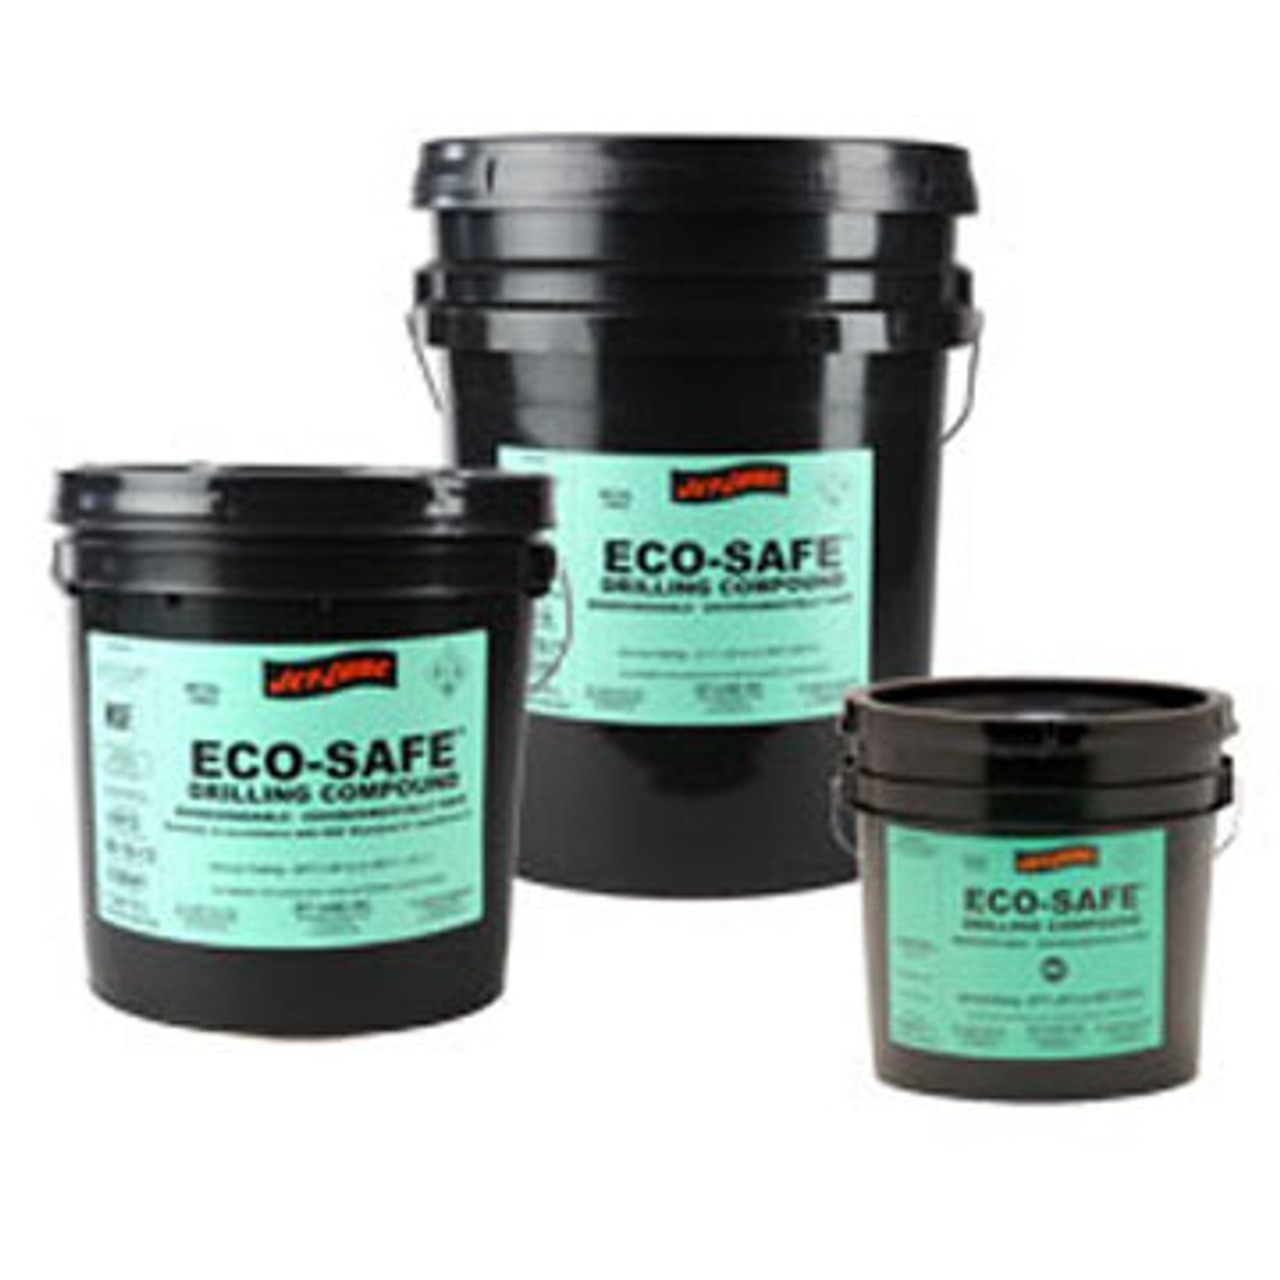 JL 14512 Eco-Safe Drilling Compound 2 Gallon